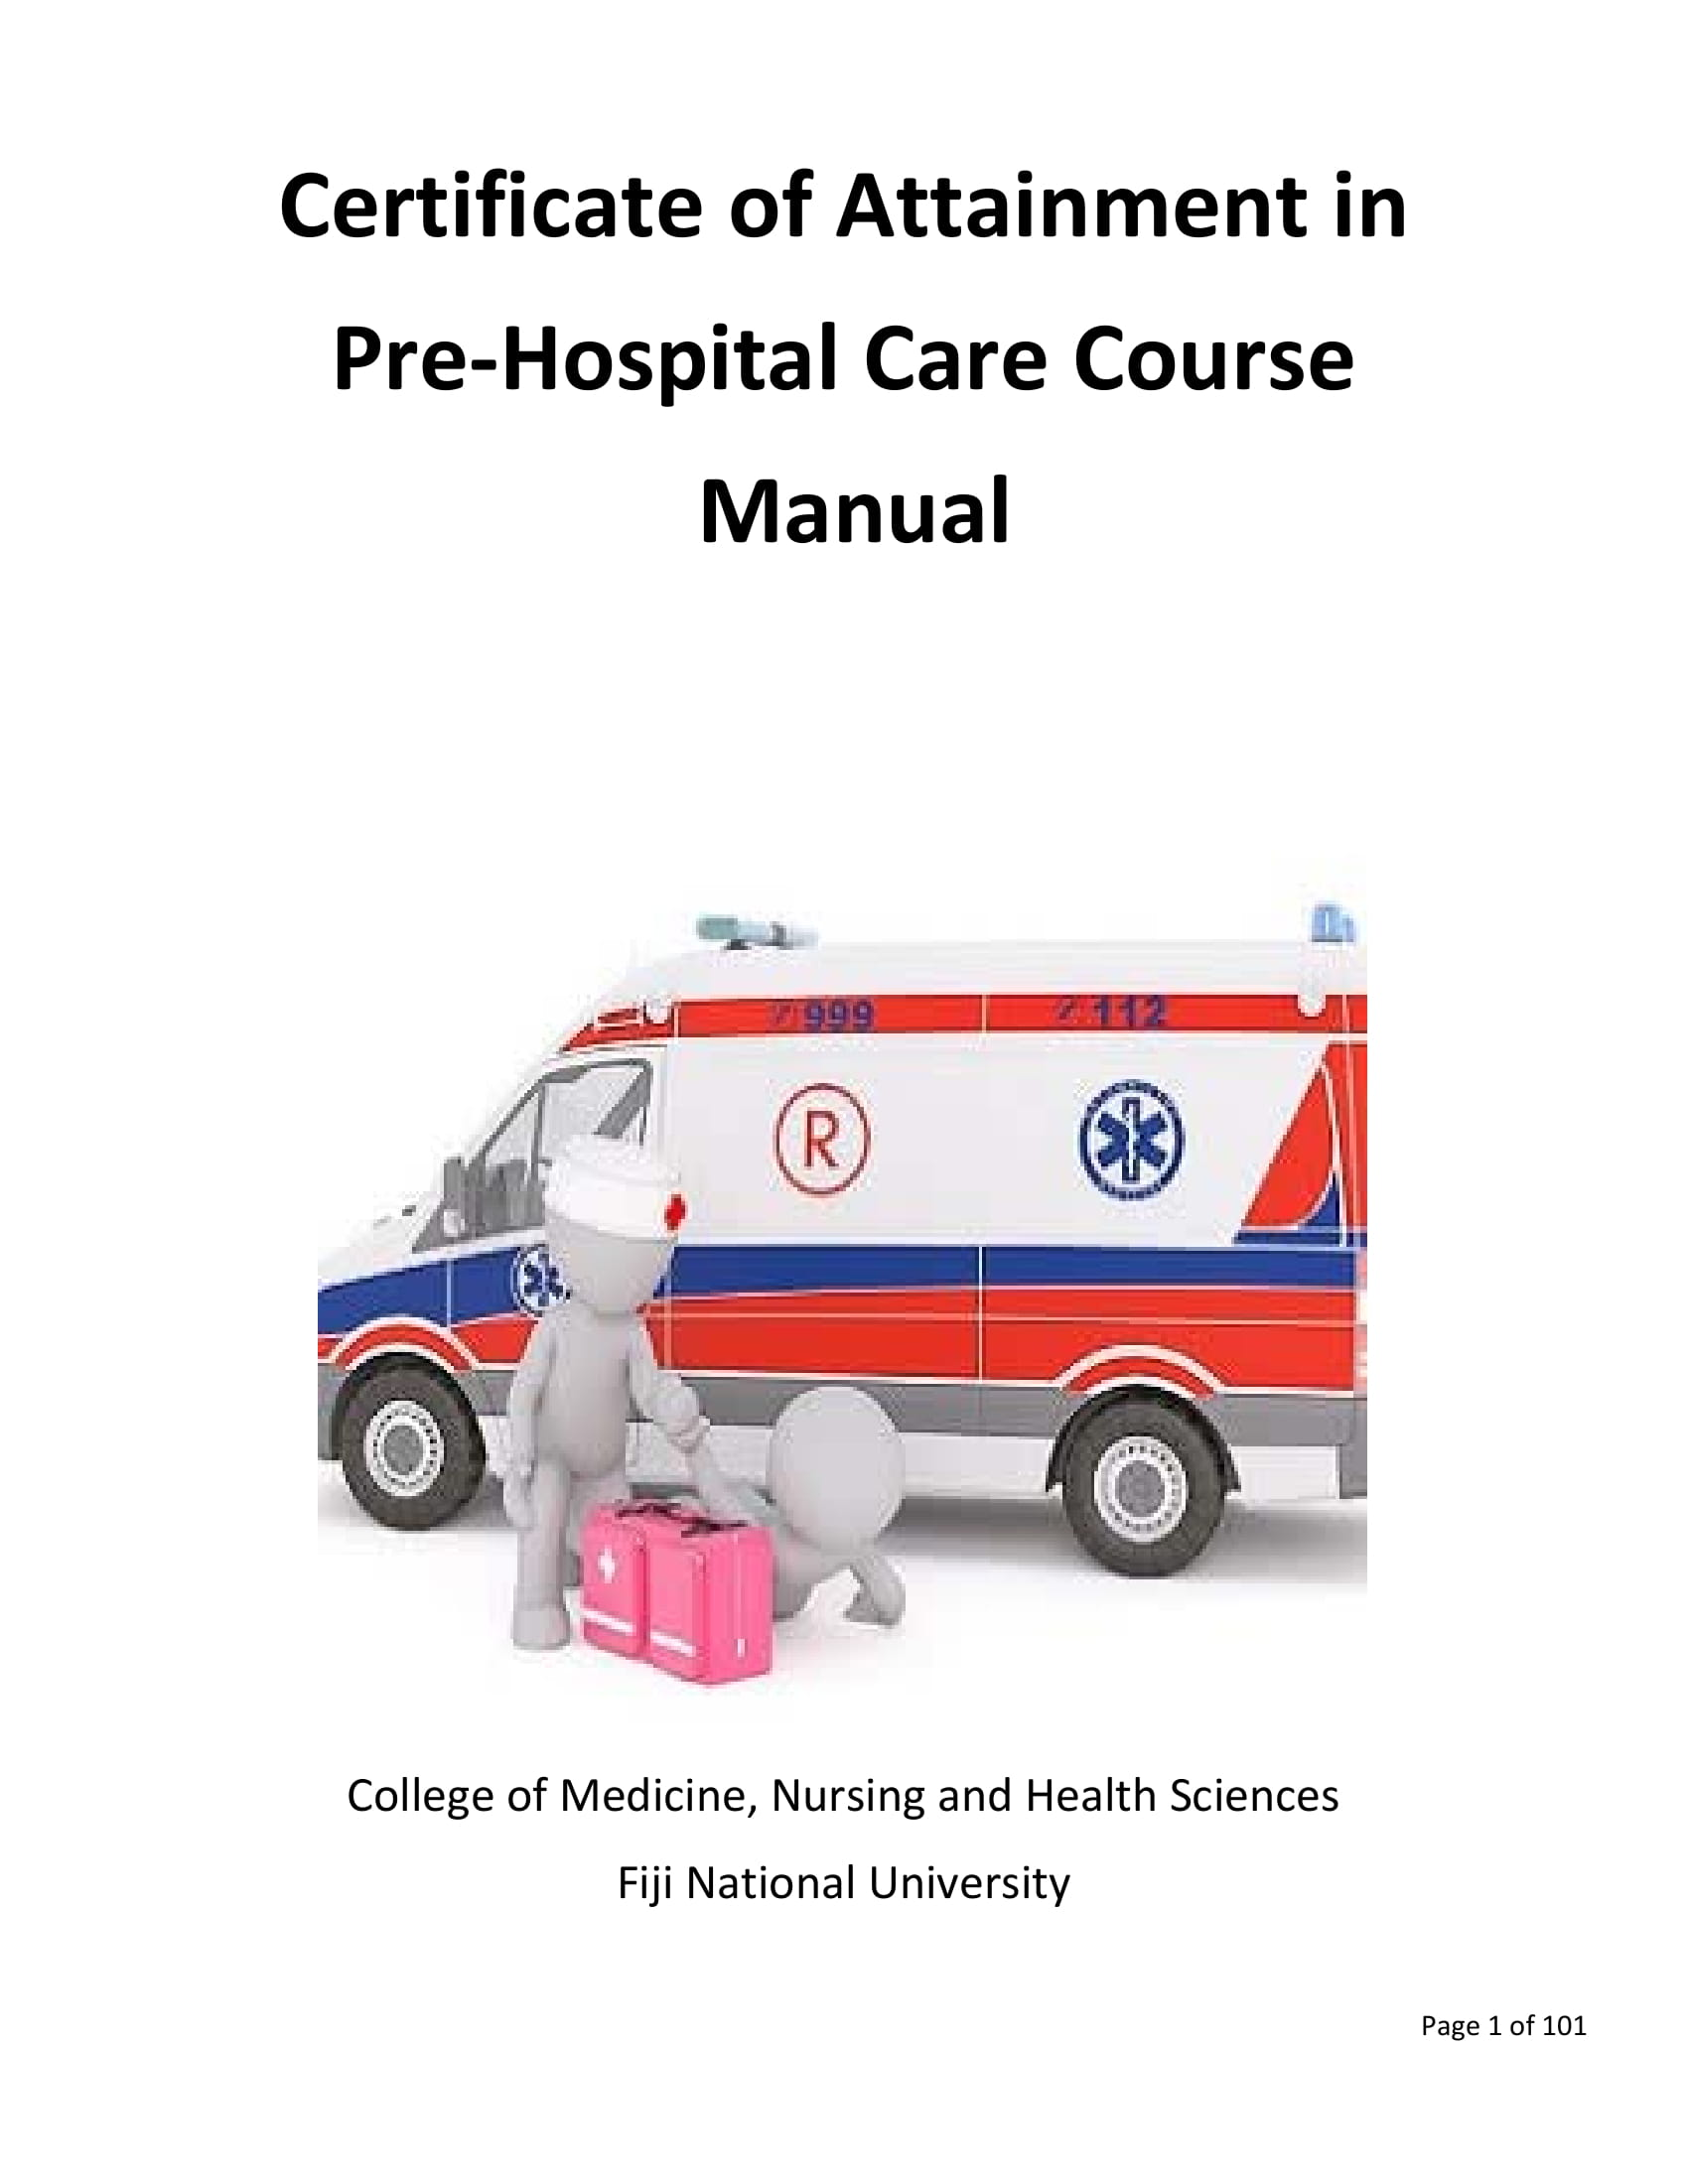 Certificate of Attainment in Pre‐Hospital Care Course <b